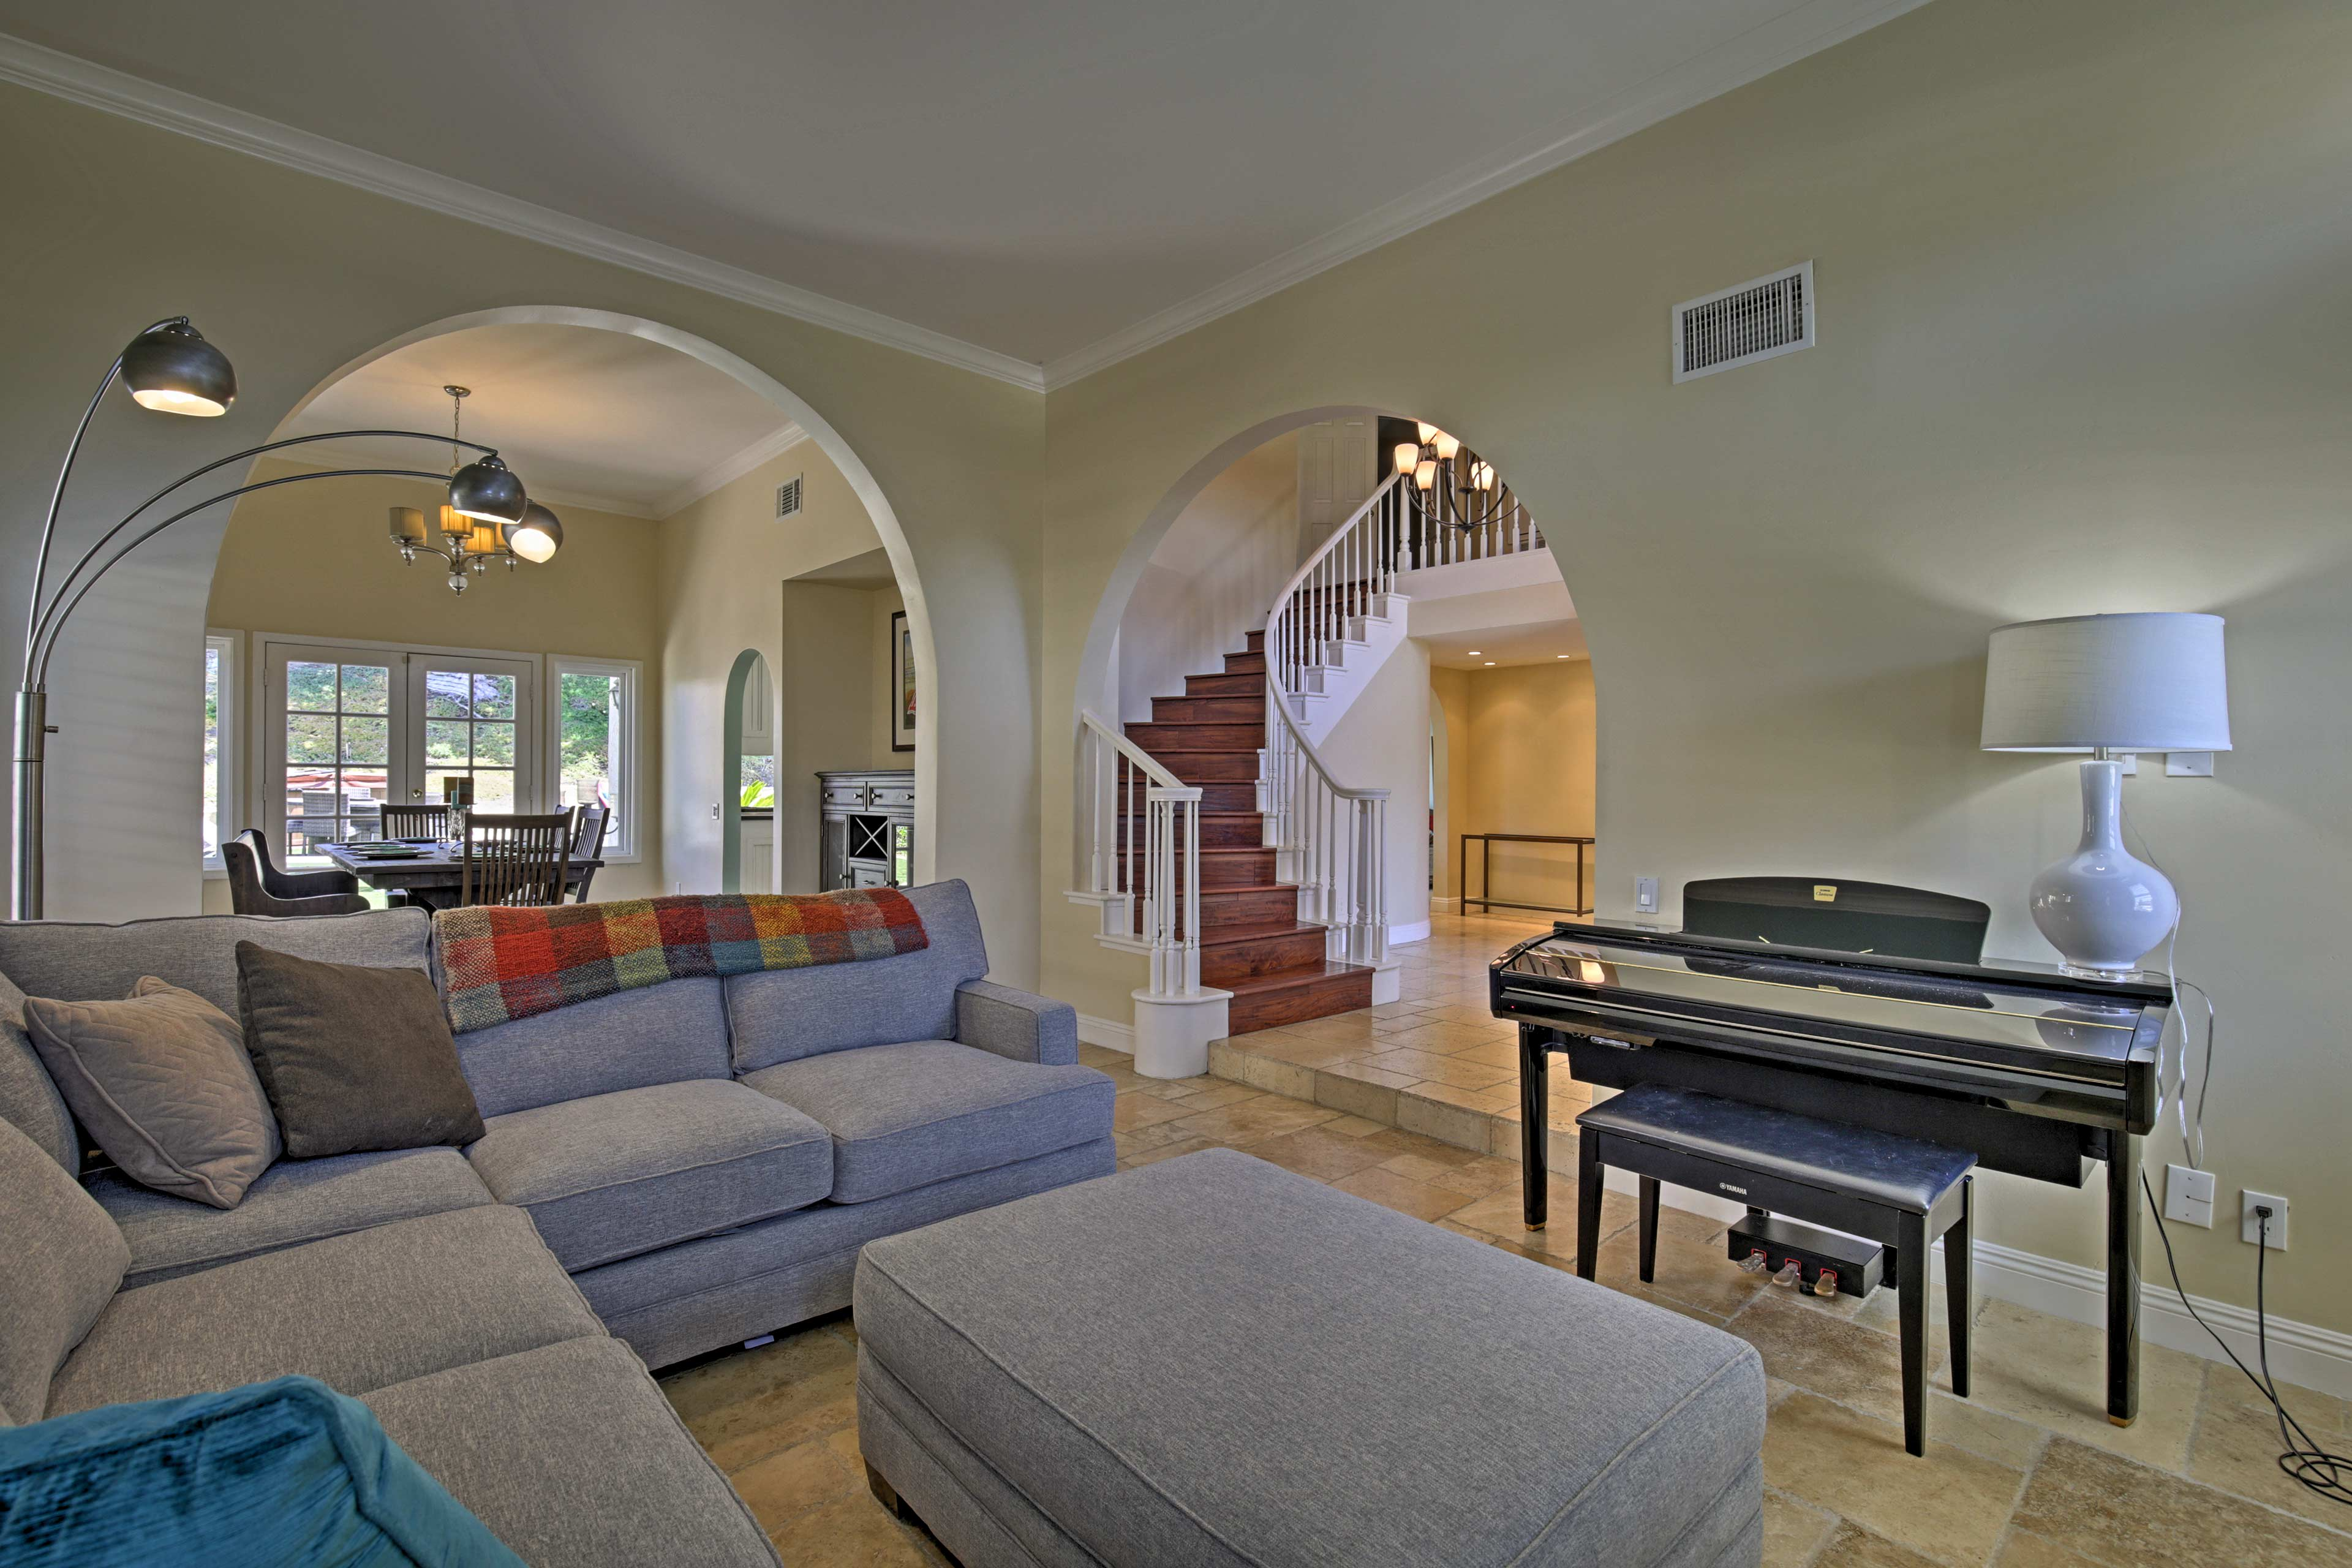 Escape to the formal living room for a moment to yourself.